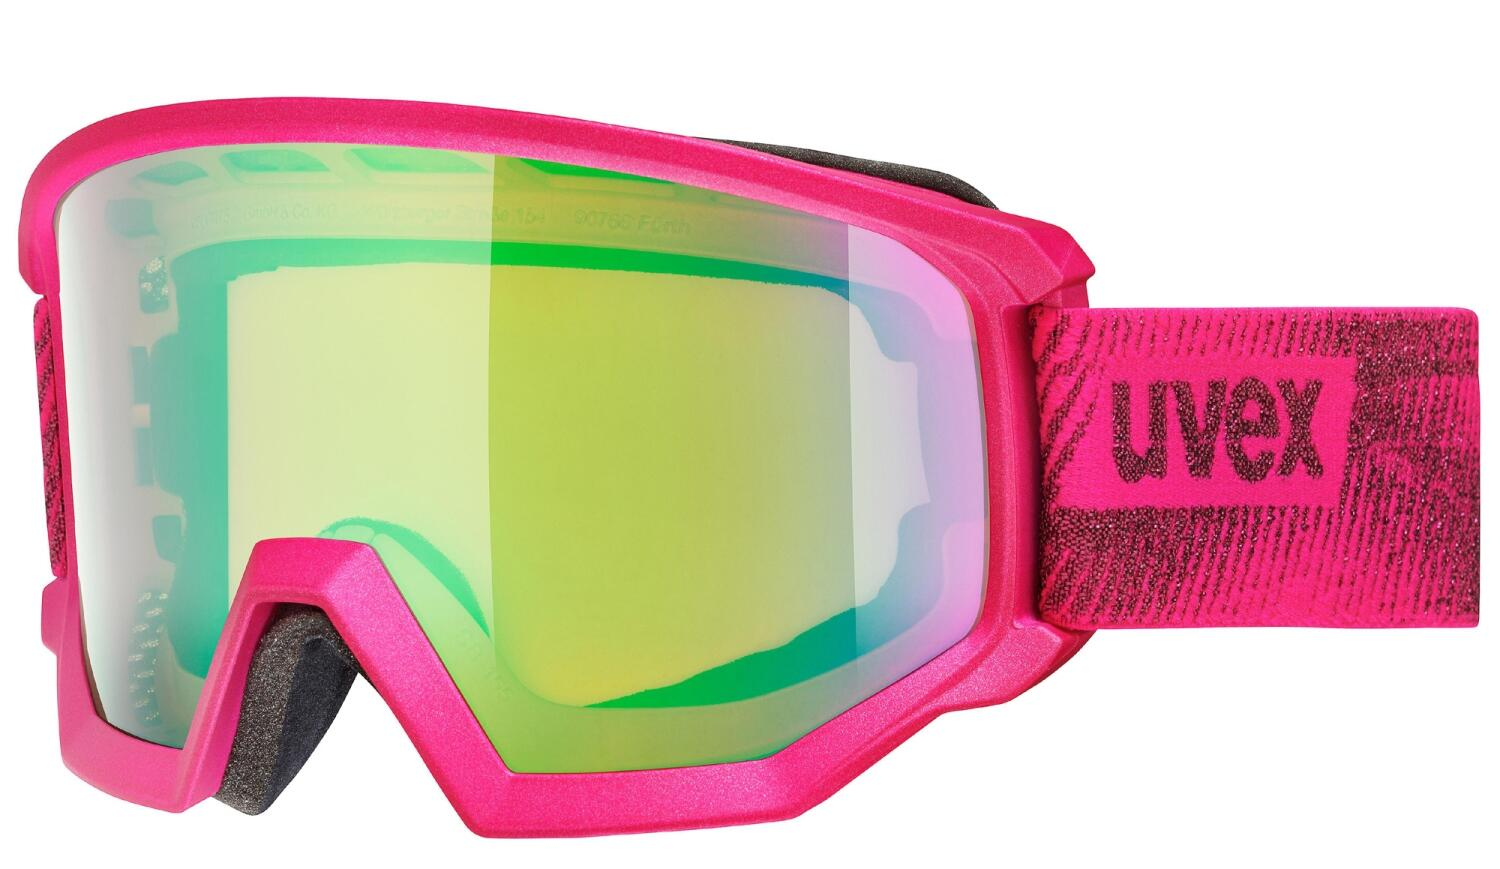 uvex-athletic-cv-skibrille-brillentr-auml-ger-farbe-9030-pink-mat-mirror-green-colorvision-orange